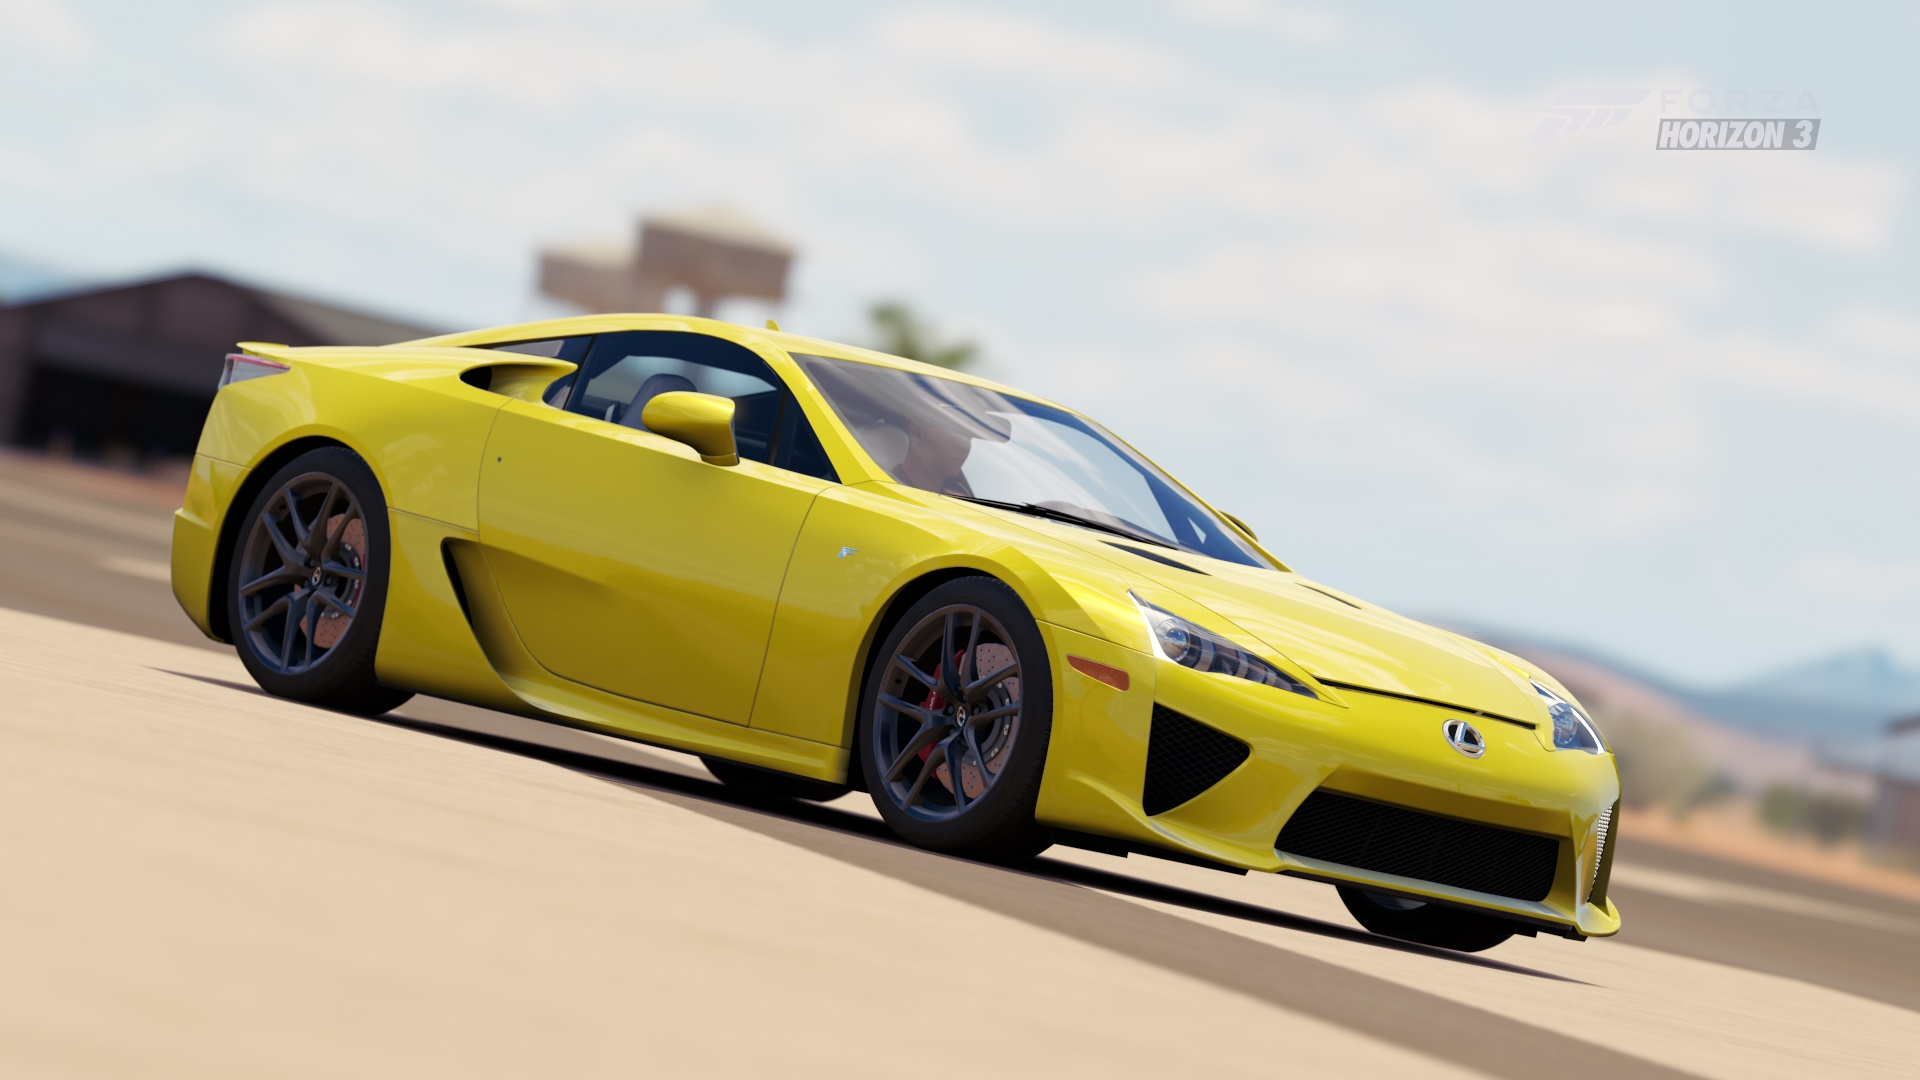 2010 Lexus LFA   Photo By V Team SAKAL